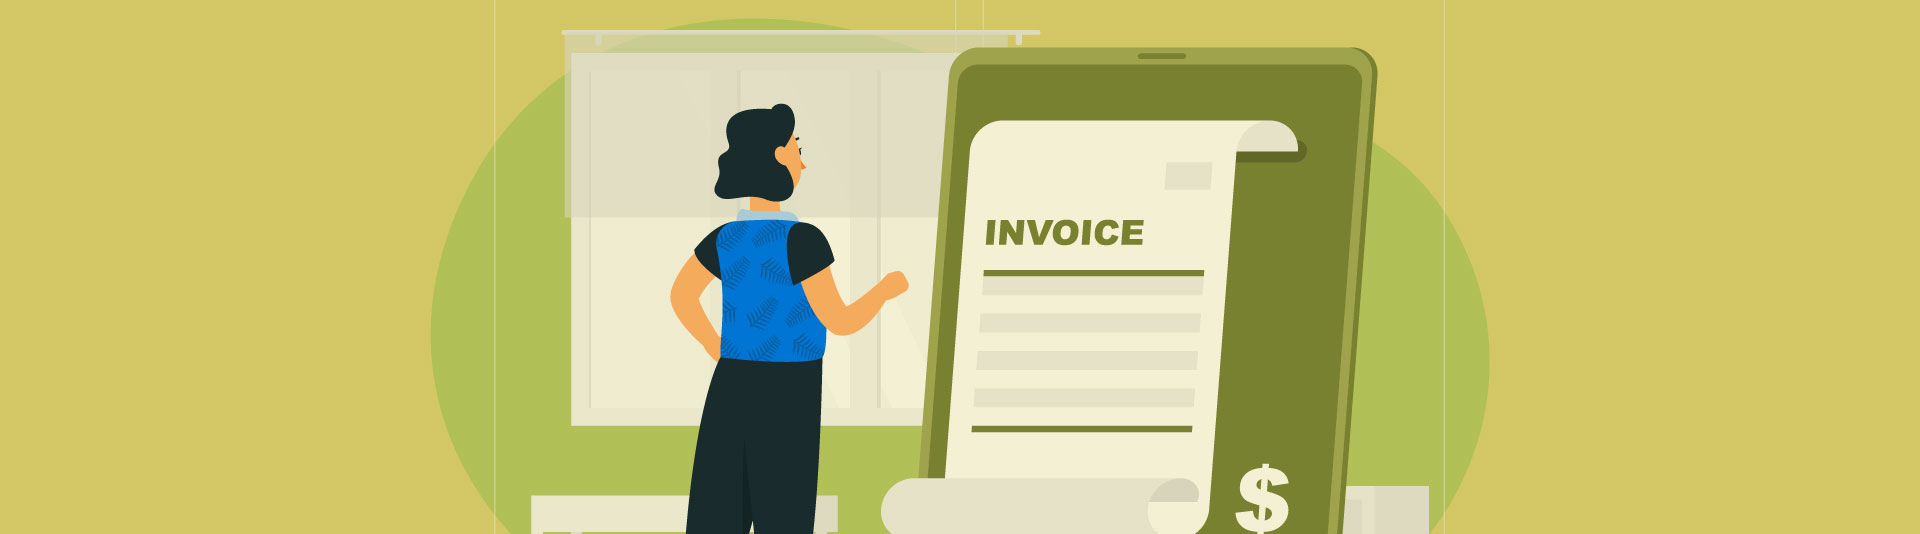 Read an Invoice